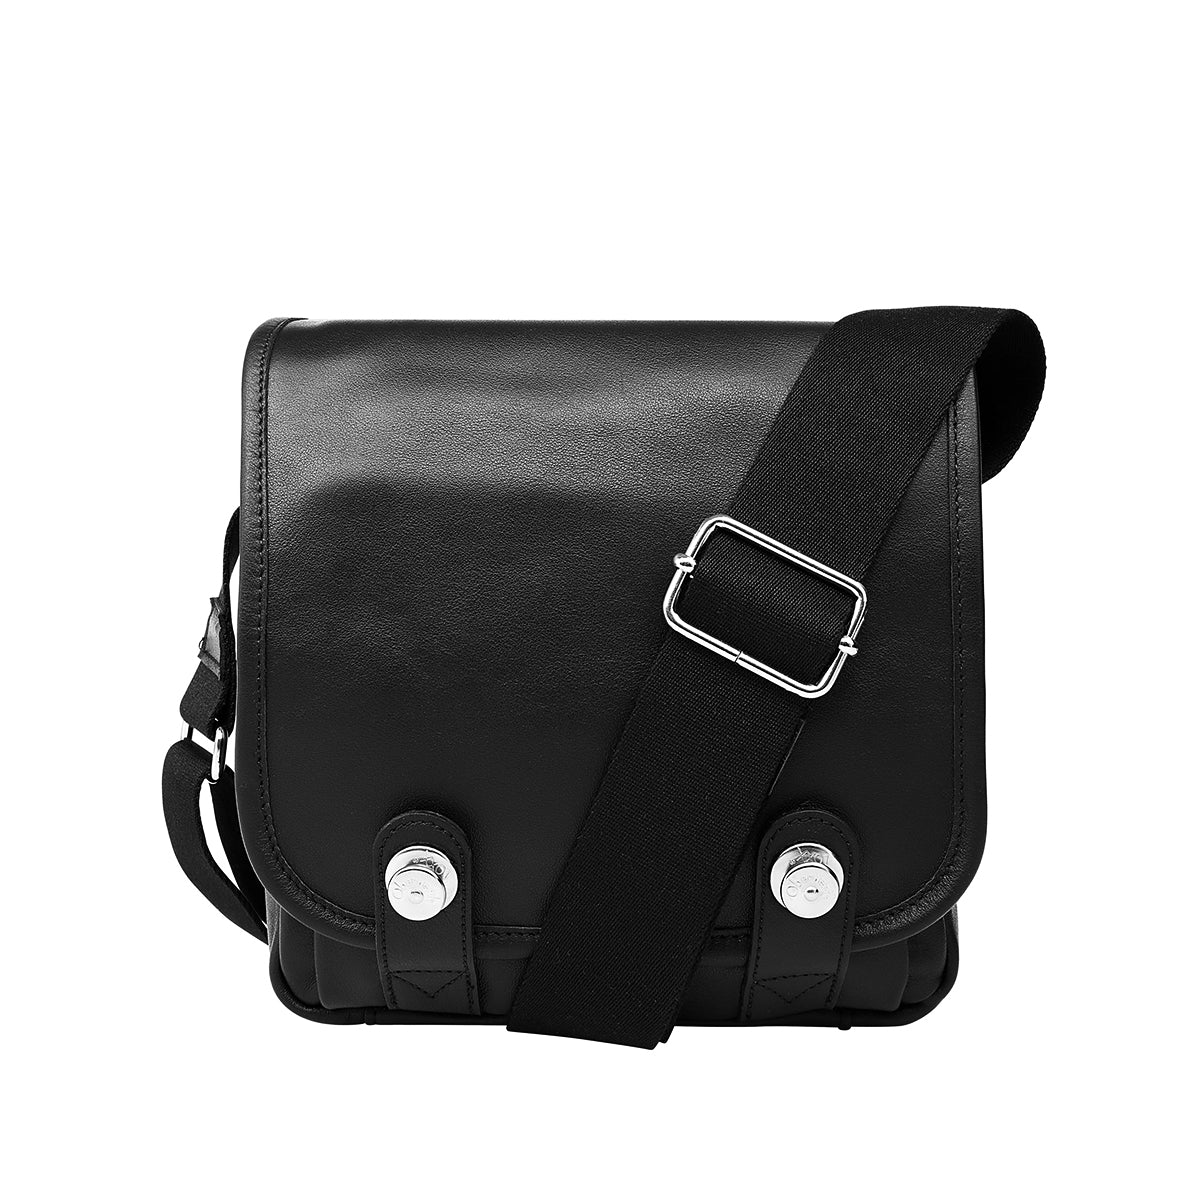 Oberwerth Boulevard Compact - Leather Camera Bag, Black with Red Lining